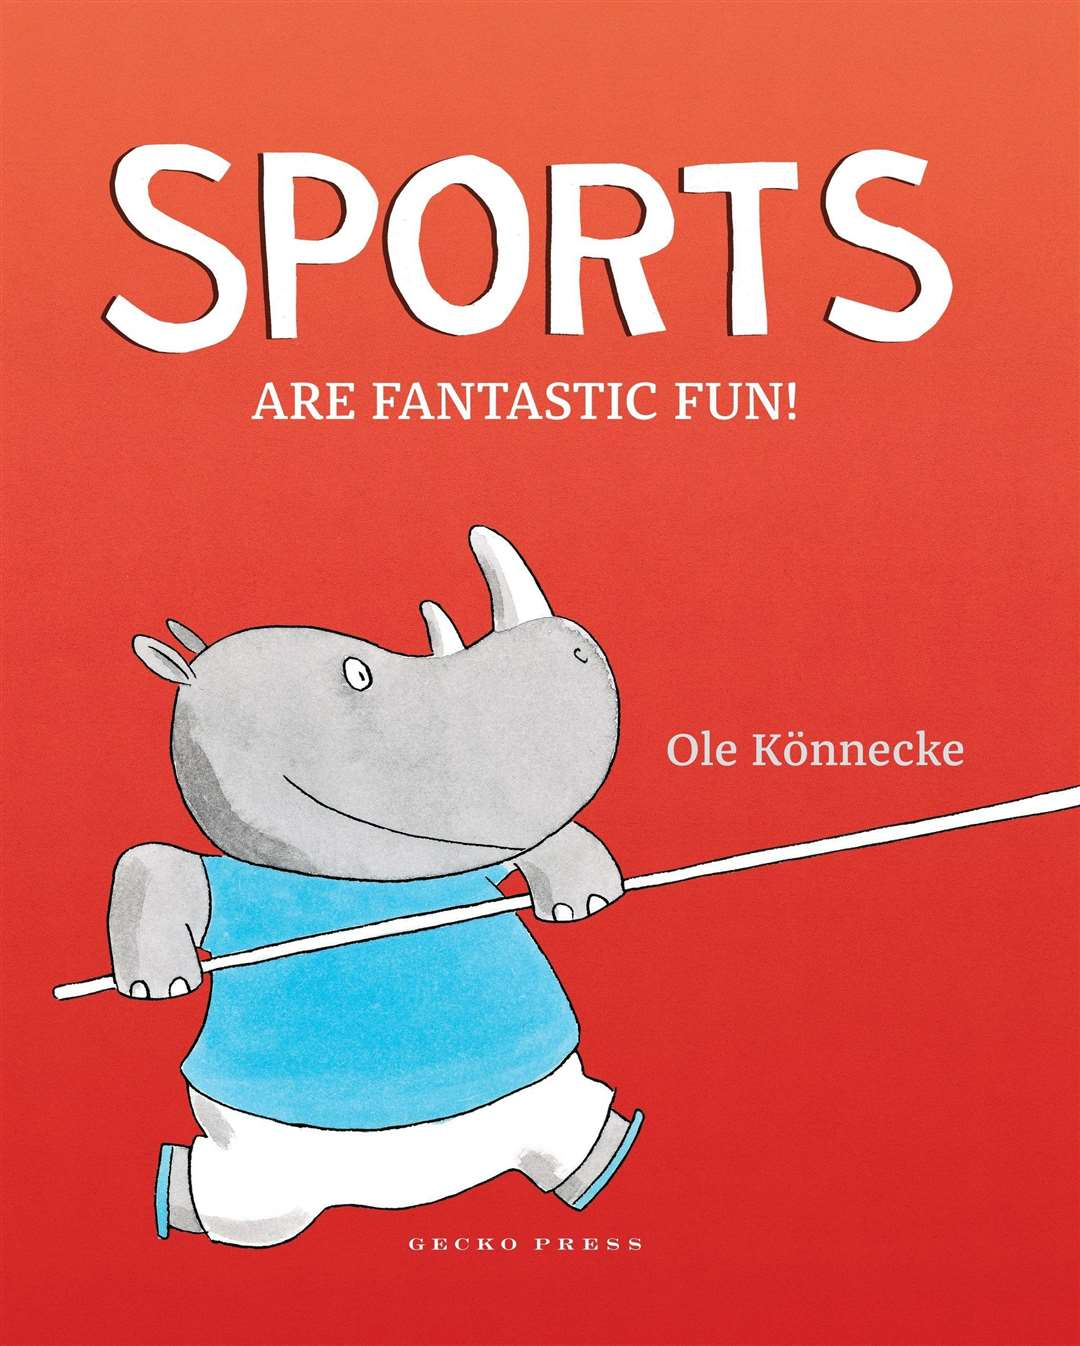 Sports are Fantastic Fun by Ole Konnecke (43189863)